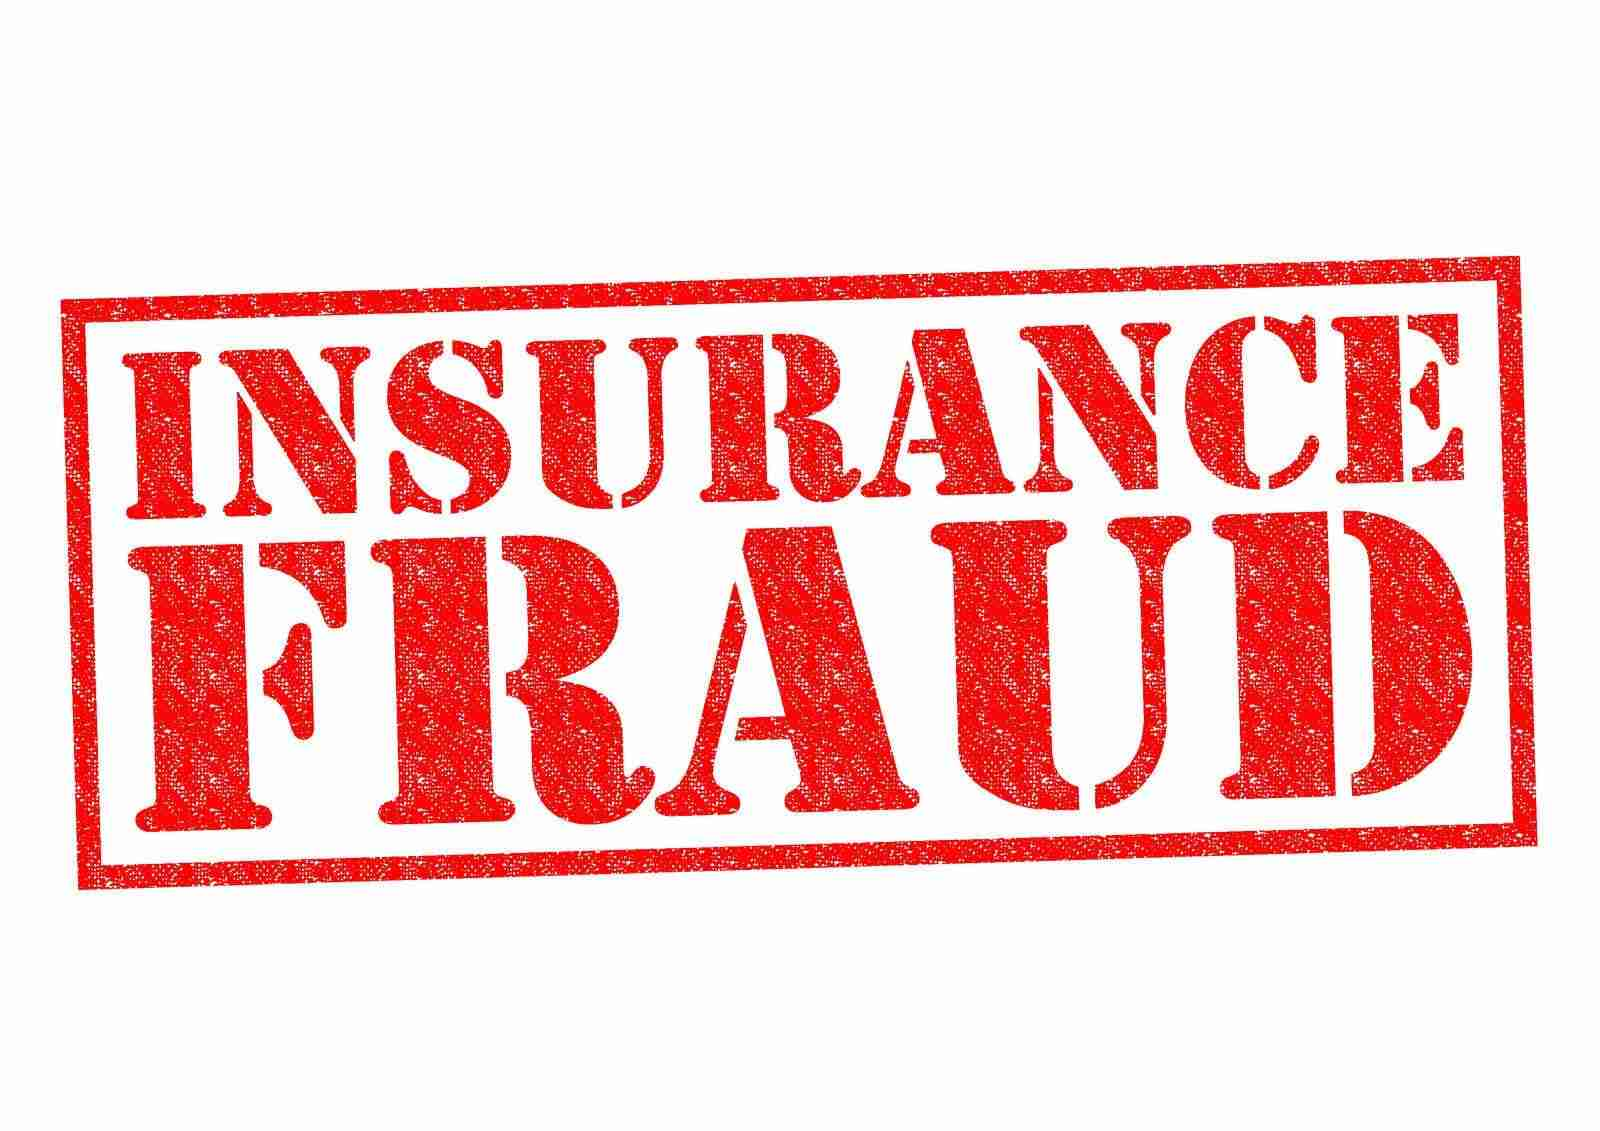 insurance fraud Learn what qualifies as insurance fraud and about the potential penalty for falsifying documents about your policy, making claims, and more.